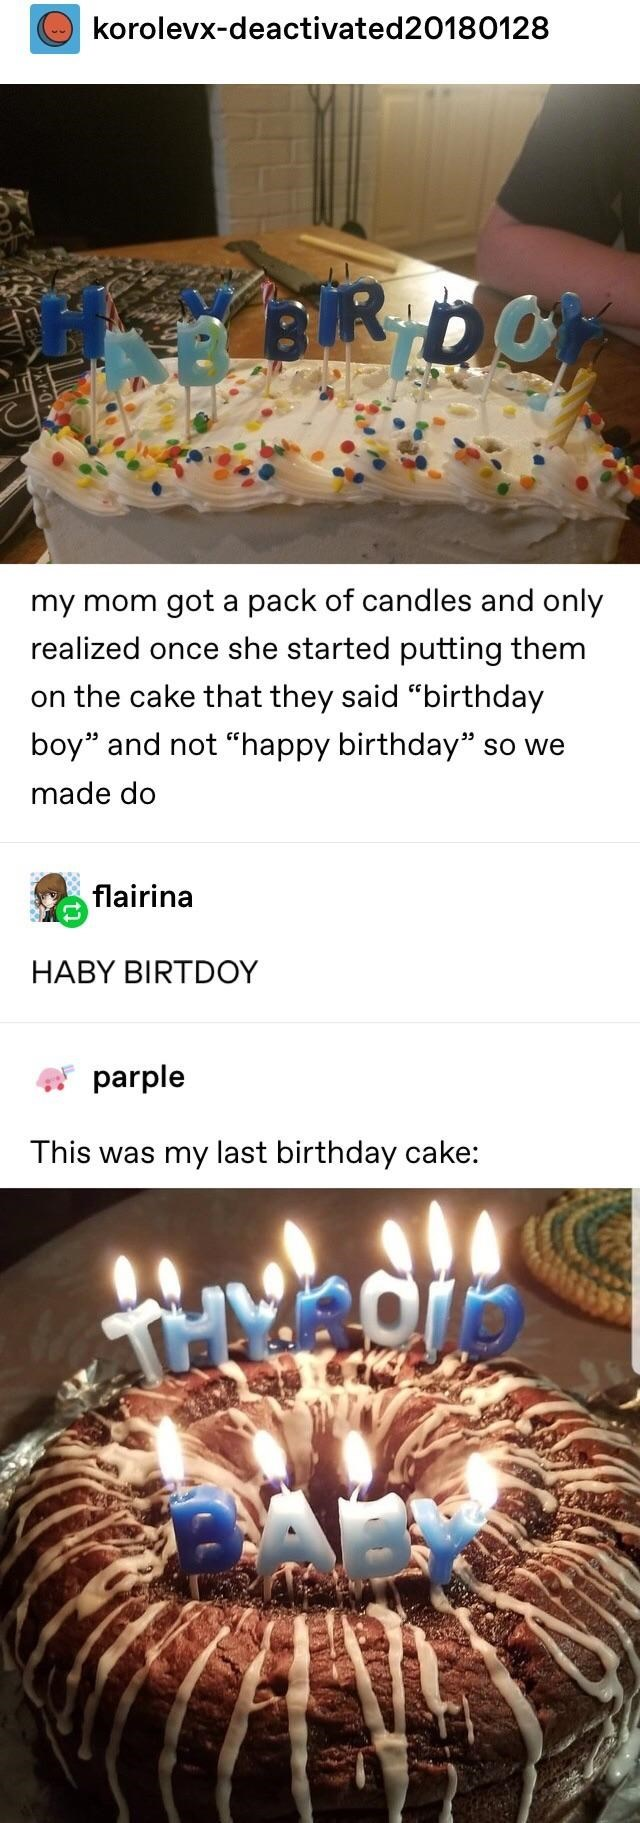 """Candle - korolevx-deactivated20180128 RDO my mom got a pack of candles and only realized once she started putting them on the cake that they said """"birthday boy"""" and not """"happy birthday"""" so we made do flairina HABY BIRTDOY parple This was my last birthday cake:"""